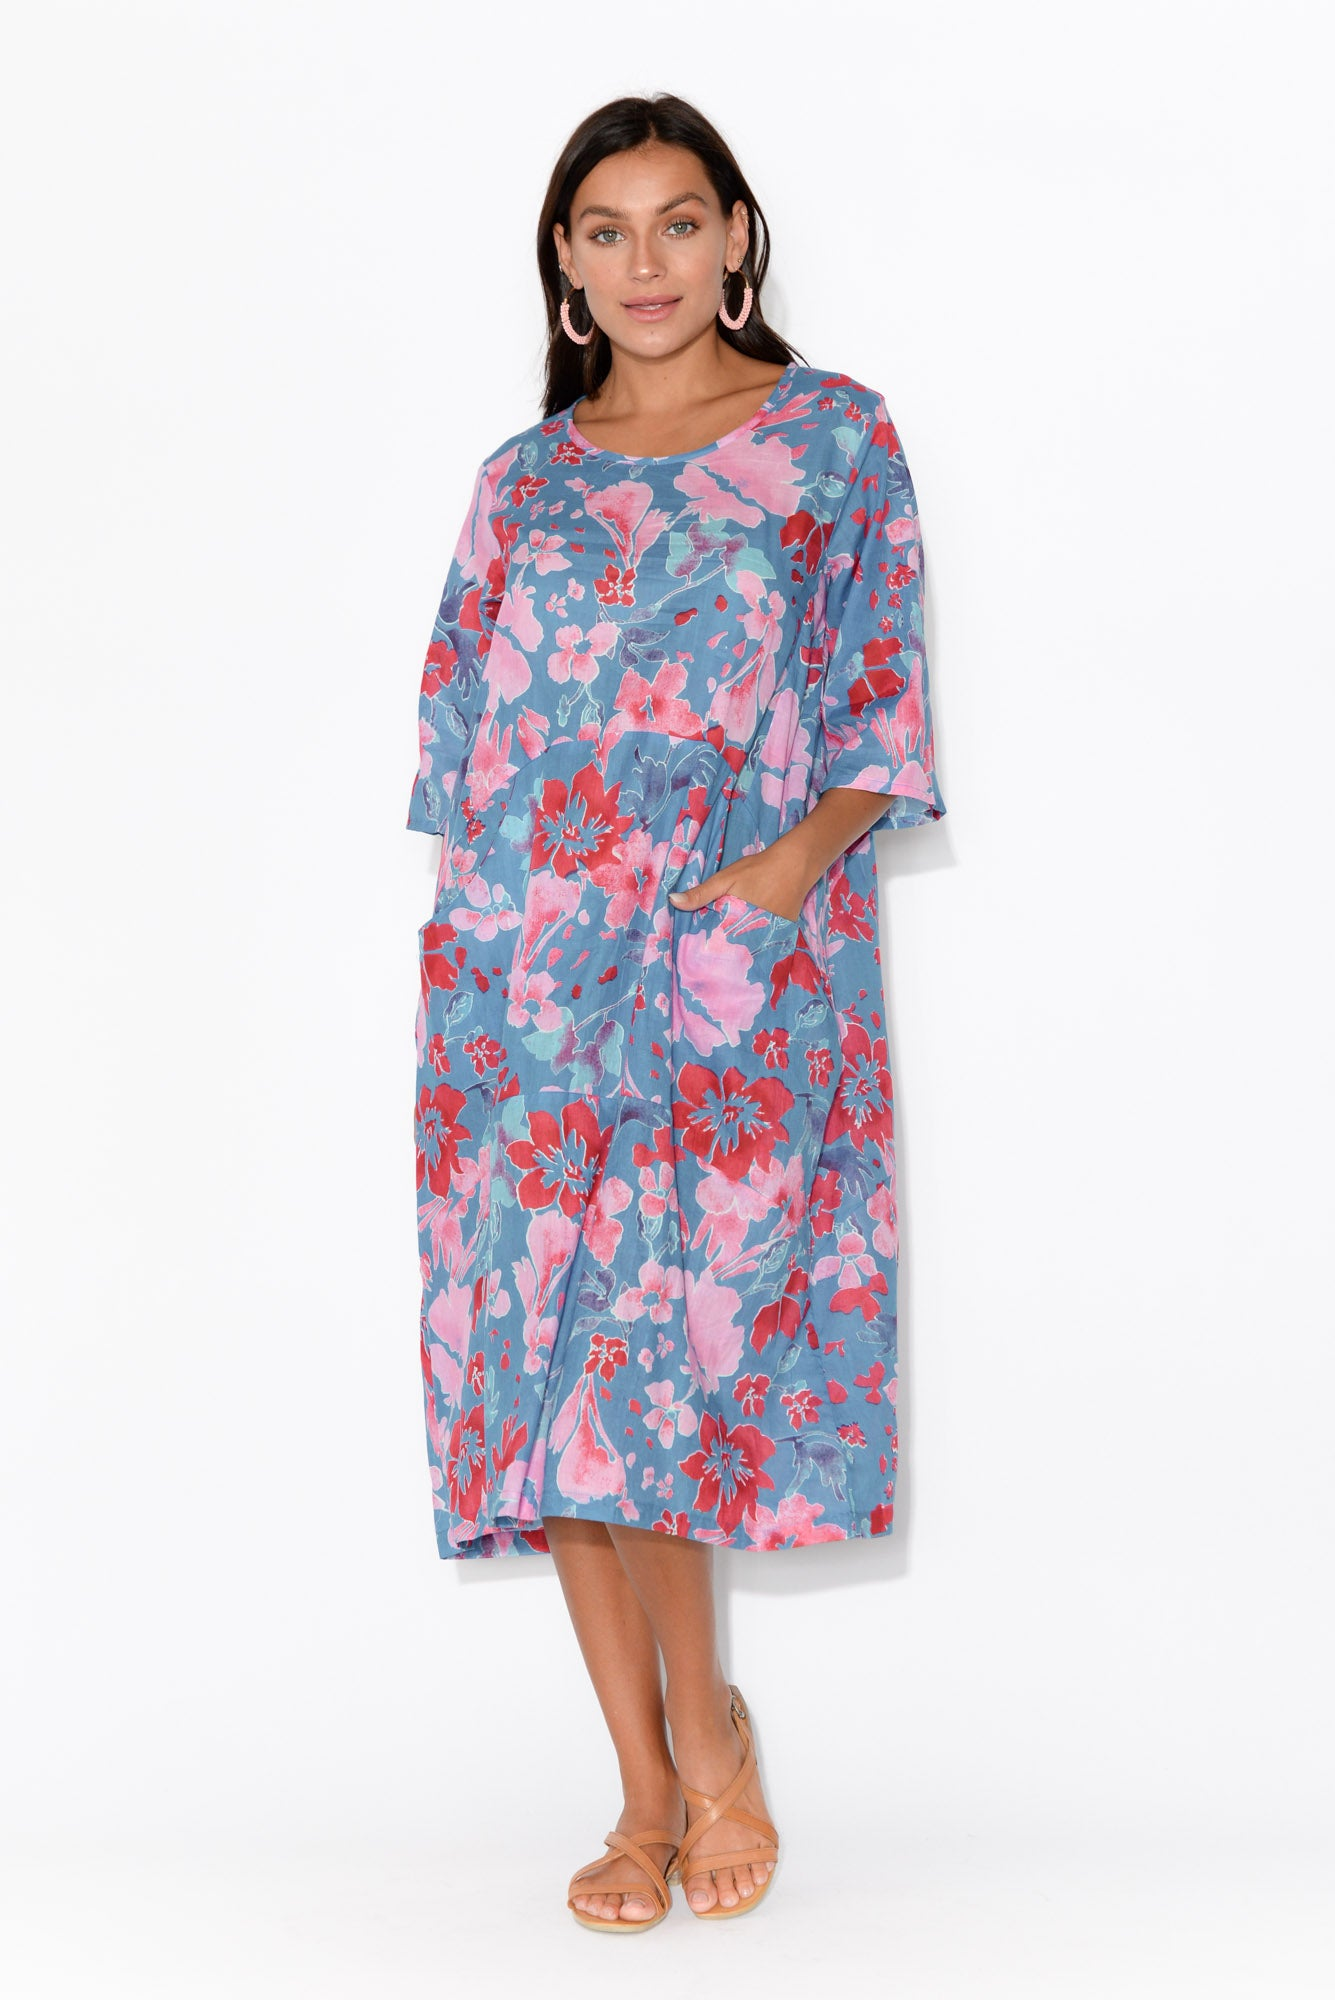 Maleny Blue Floral Cotton Dress